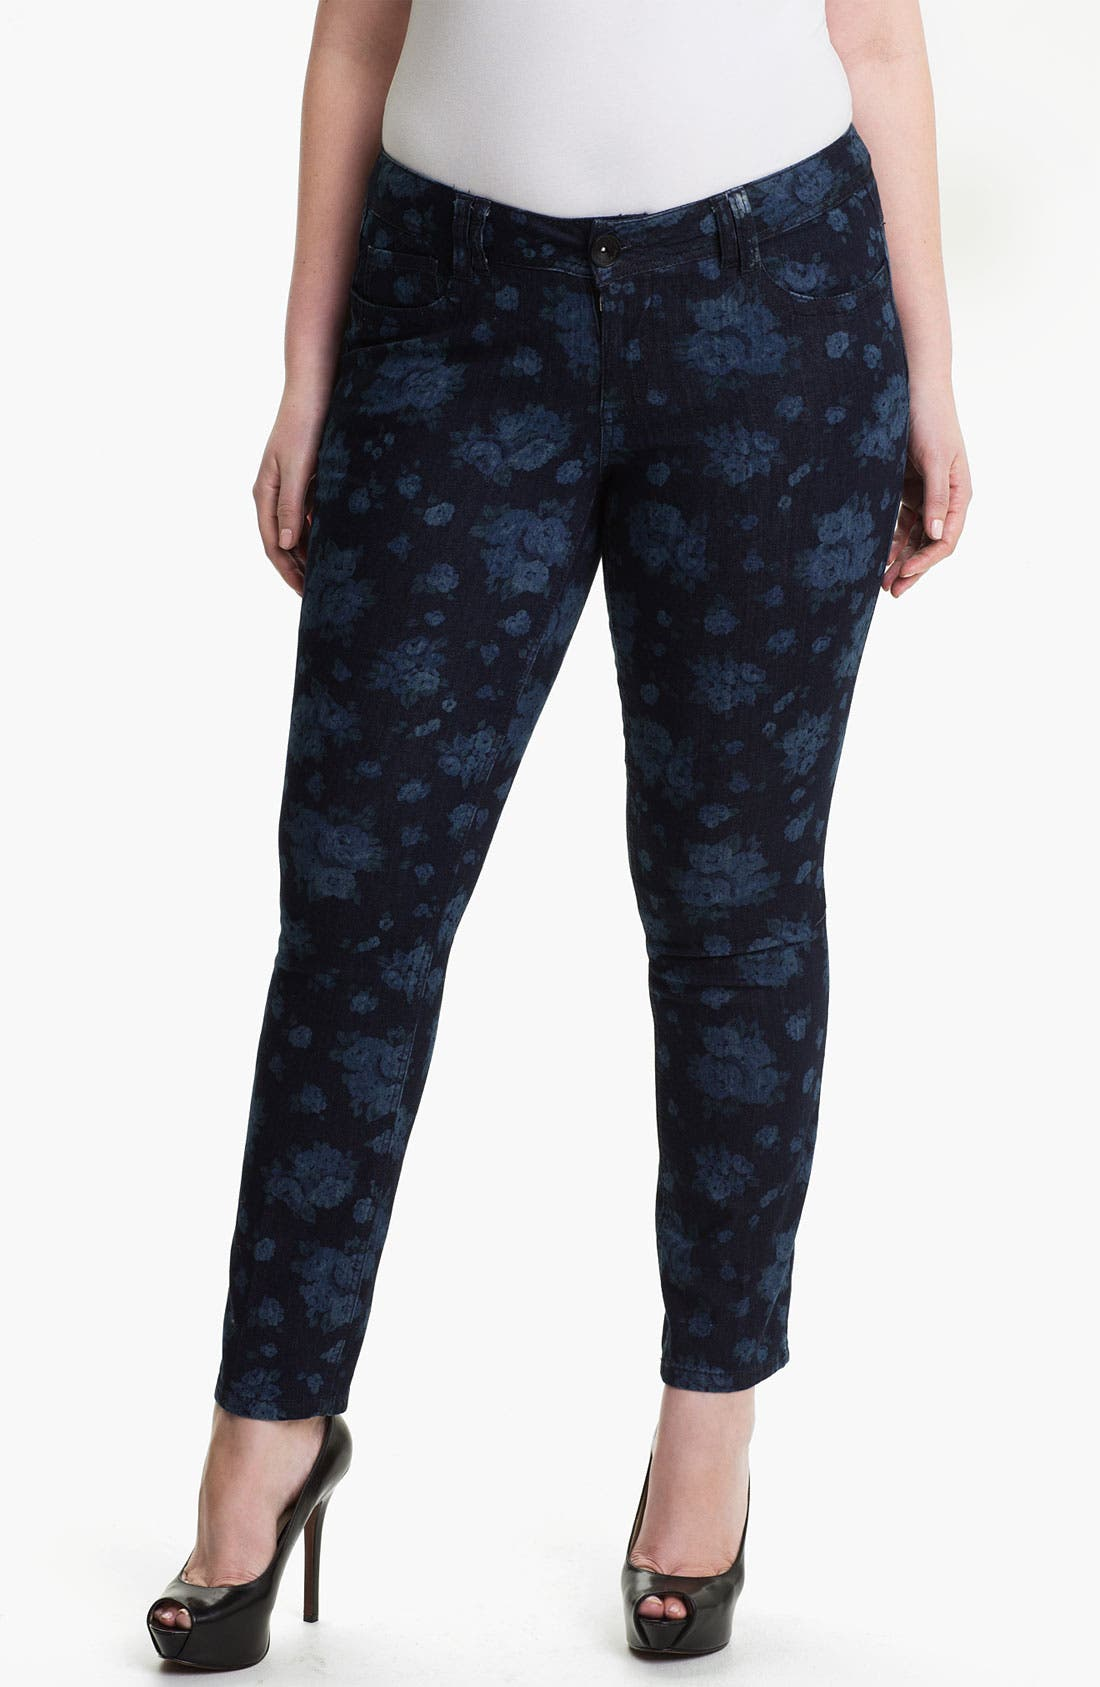 Main Image - Wit & Wisdom Floral Print Leggings (Plus) (Nordstrom Exclusive)